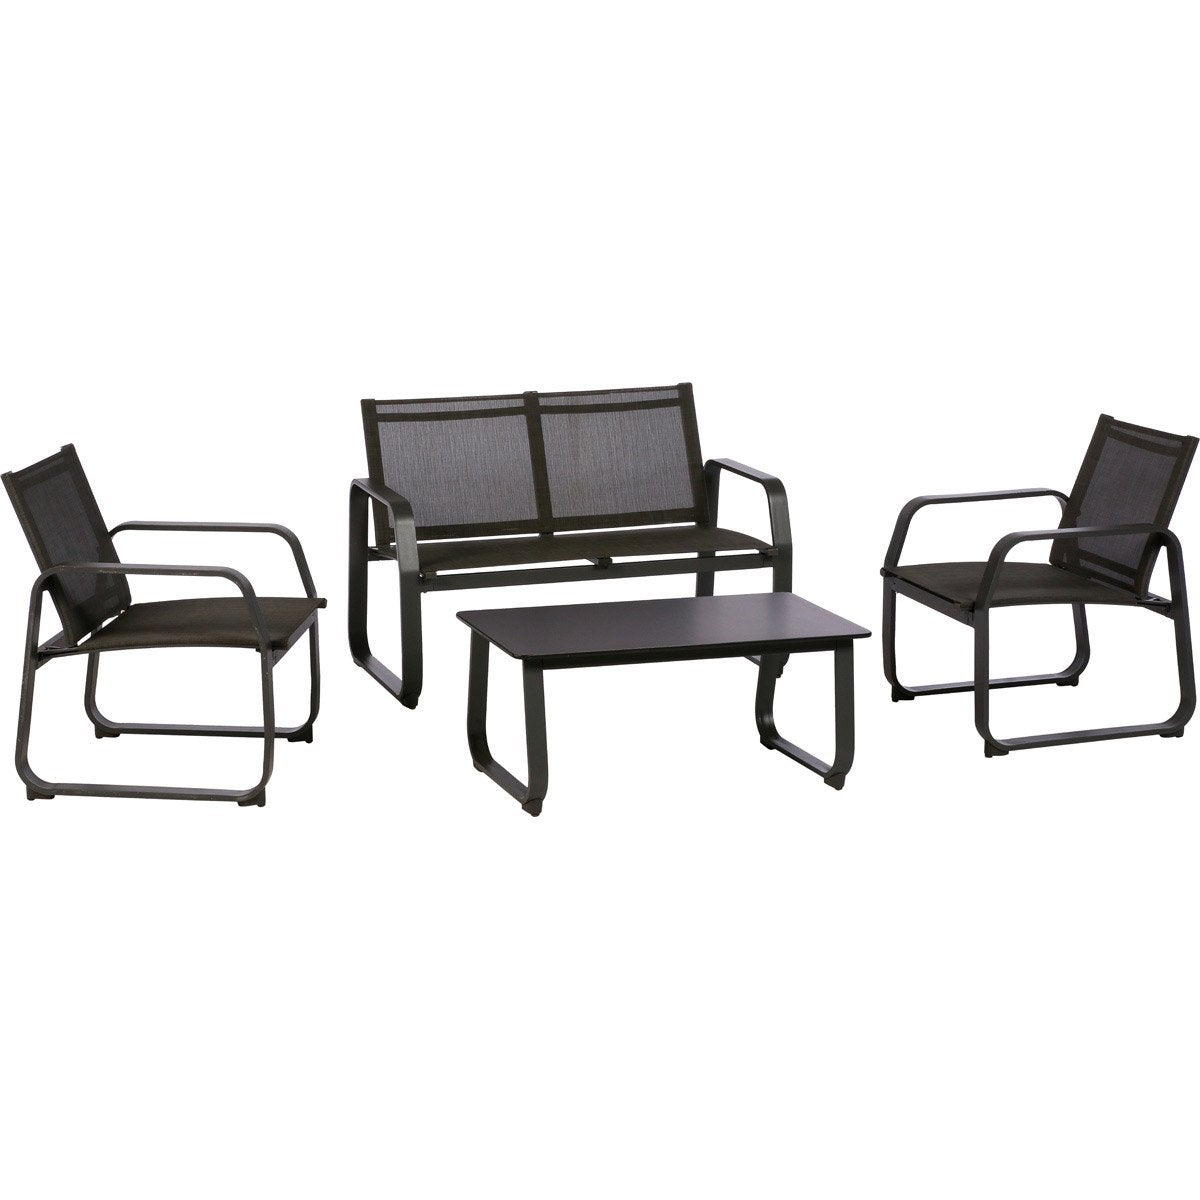 salon bas de jardin gili aluminium anthracite 4 personnes leroy merlin. Black Bedroom Furniture Sets. Home Design Ideas